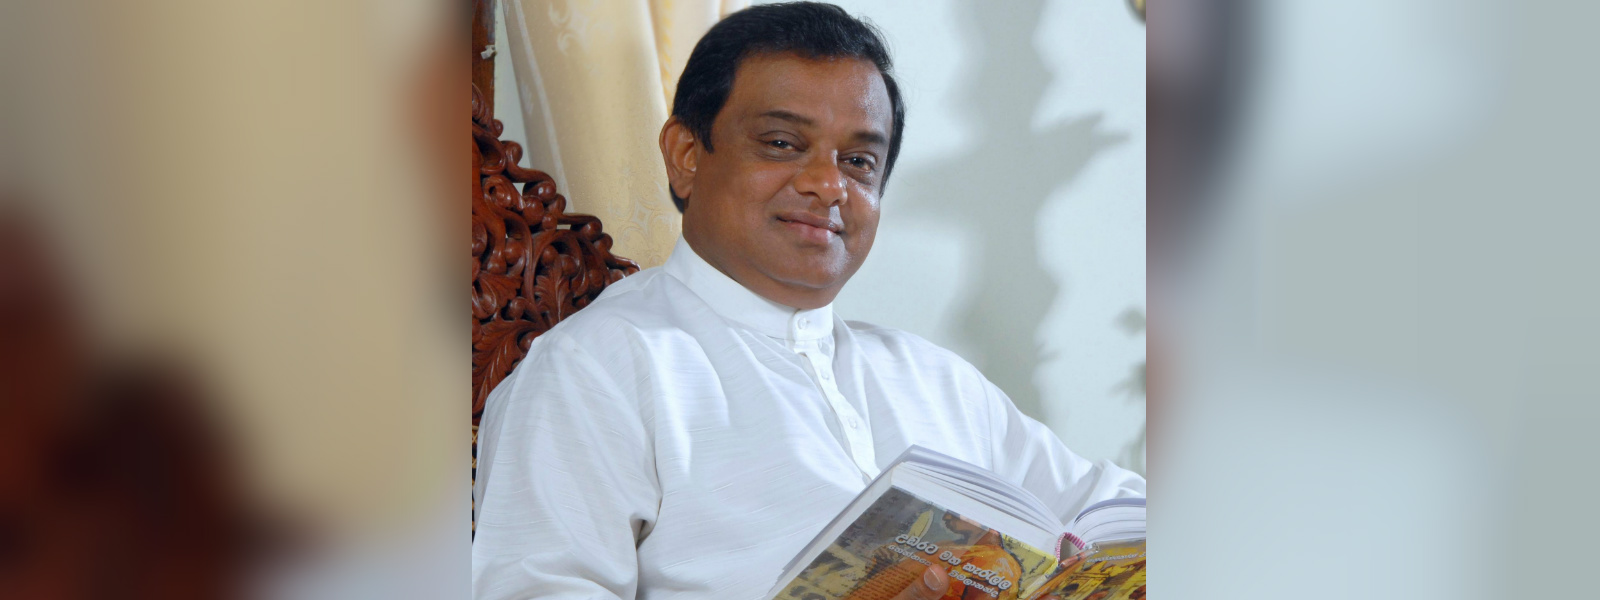 There will be no joint leaders : State Minister C.B. Ratnayake